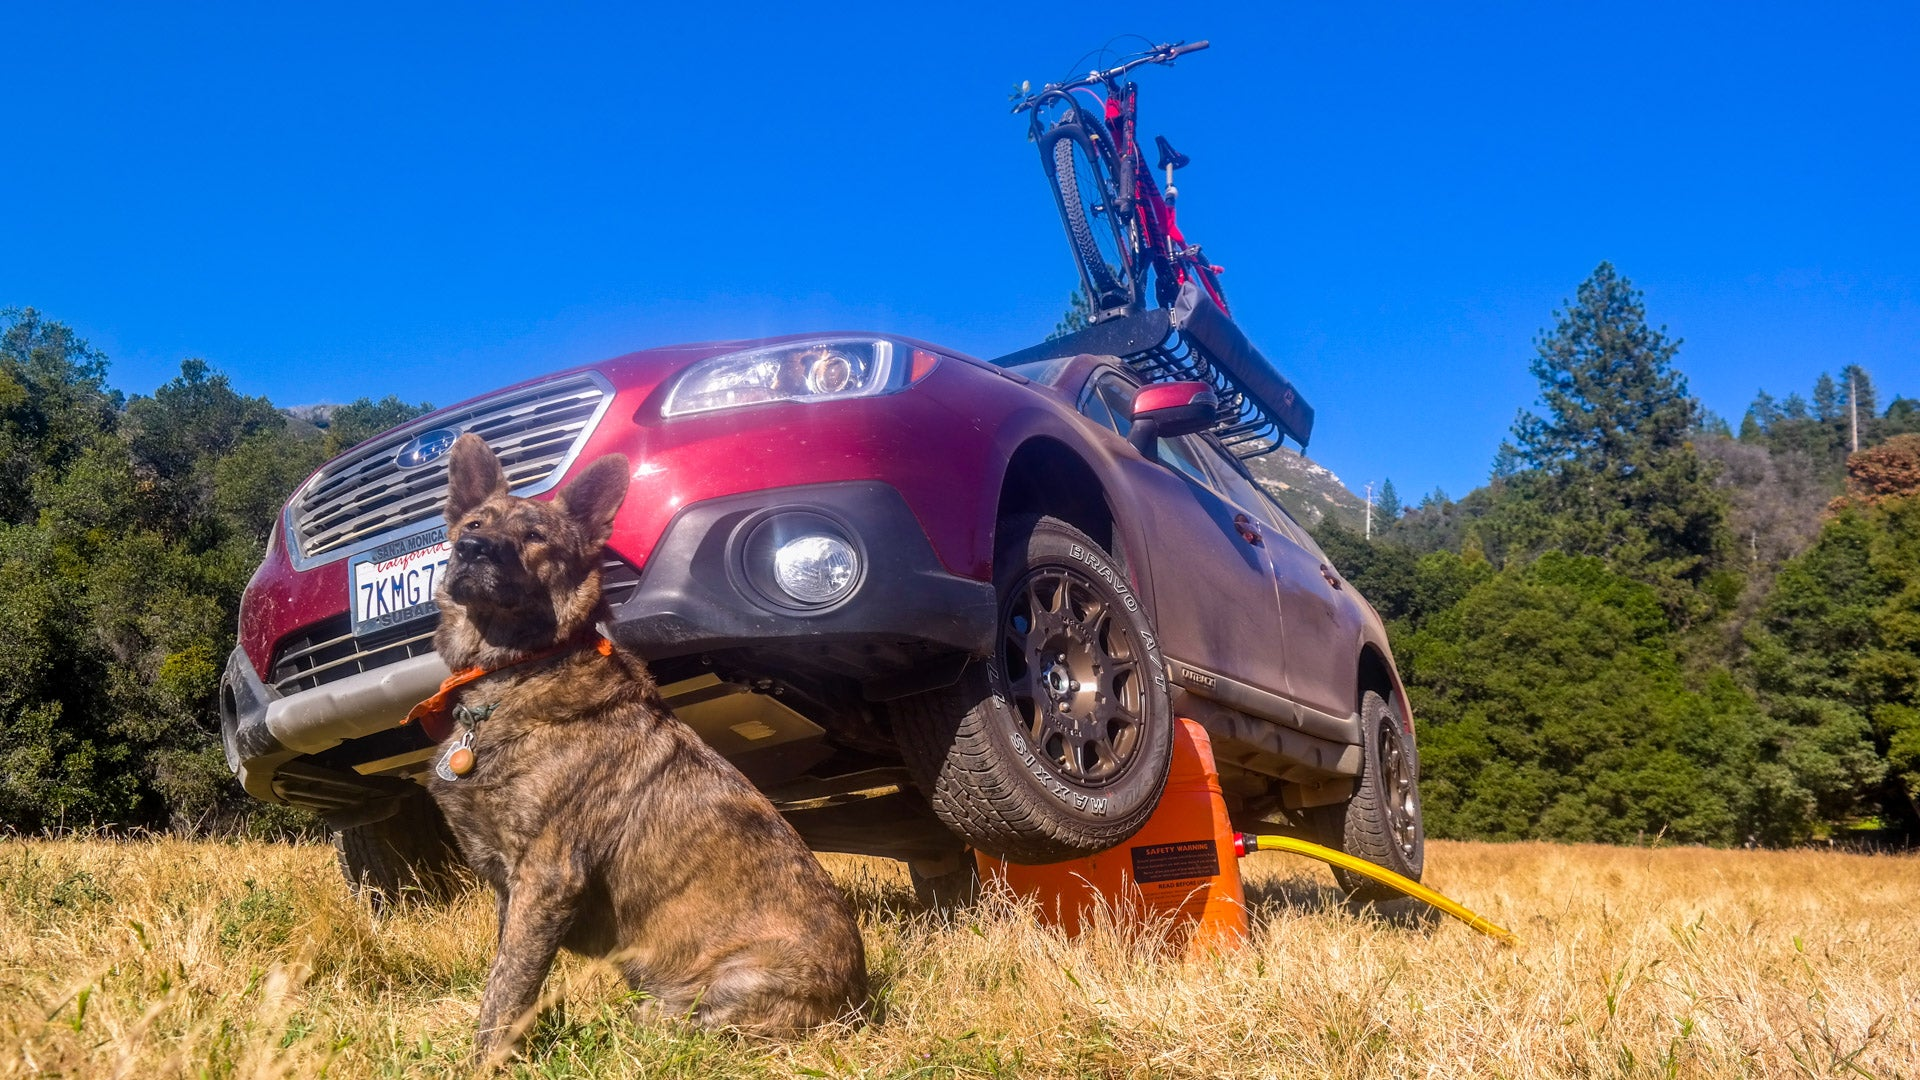 Shopping for a truck to take off-road I ended up buying a Subaru Outback then modifying it to meet my need for dirt. 8500 miles in howu0027s it holding up? & How I Turned My Subaru Outback Into a Real Adventuremobile